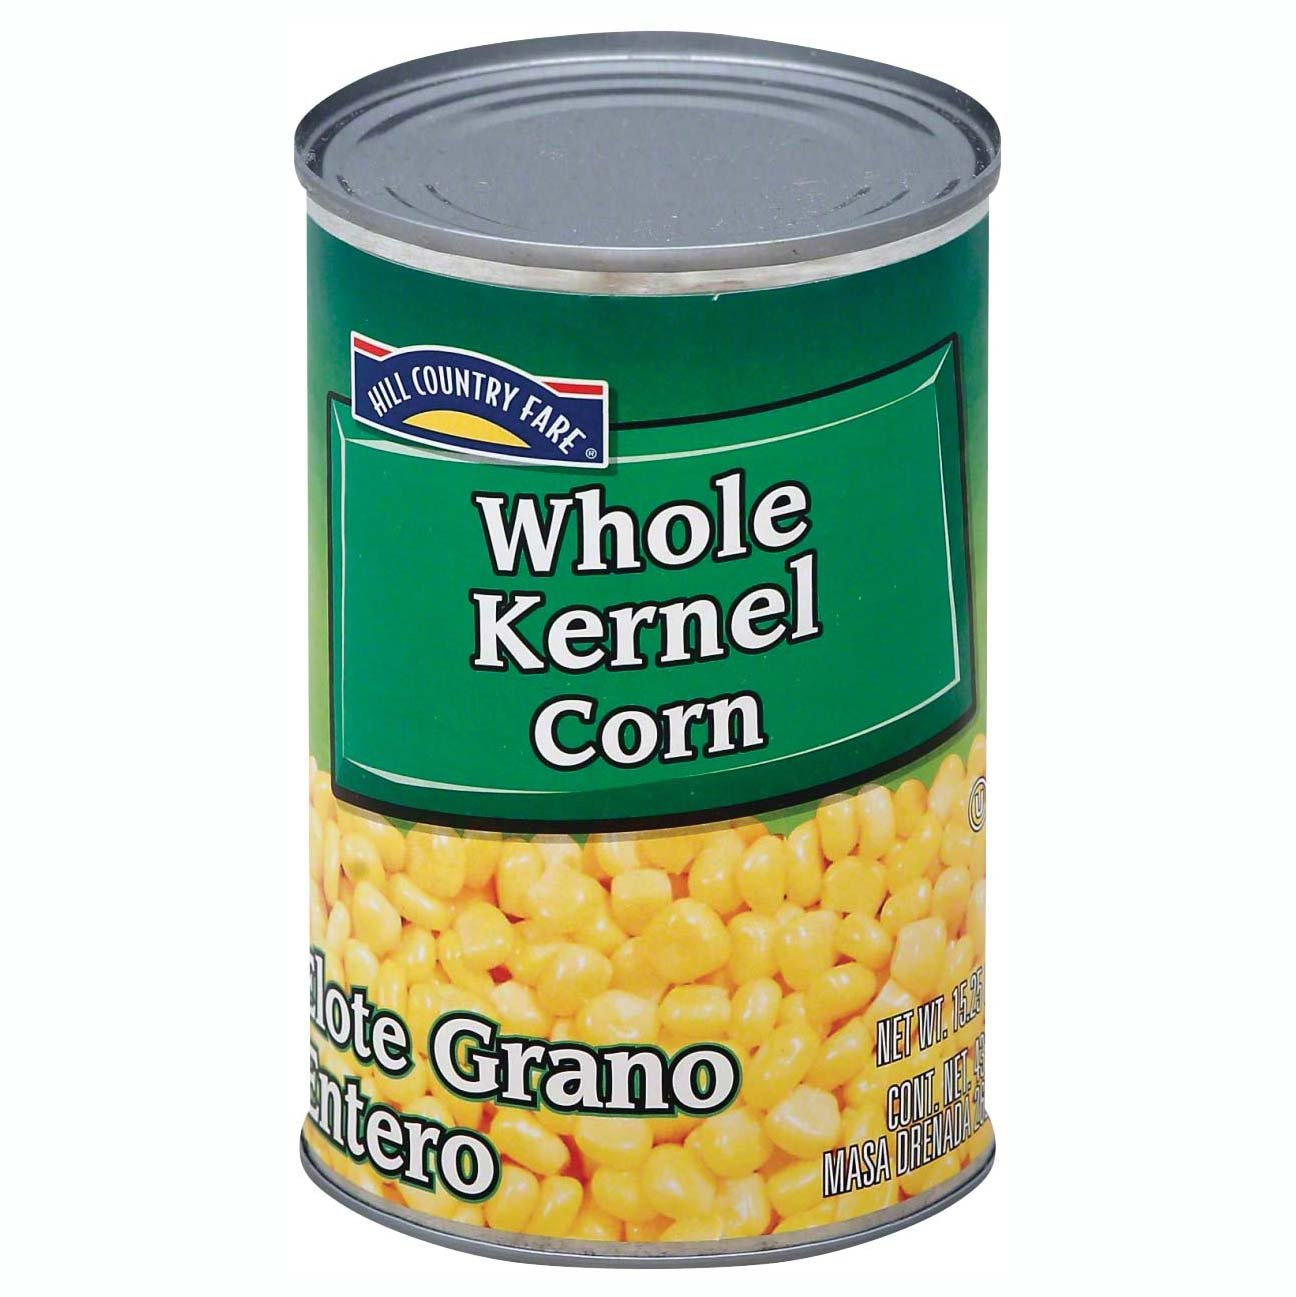 hill country fare whole kernel corn shop canned vegetables at heb